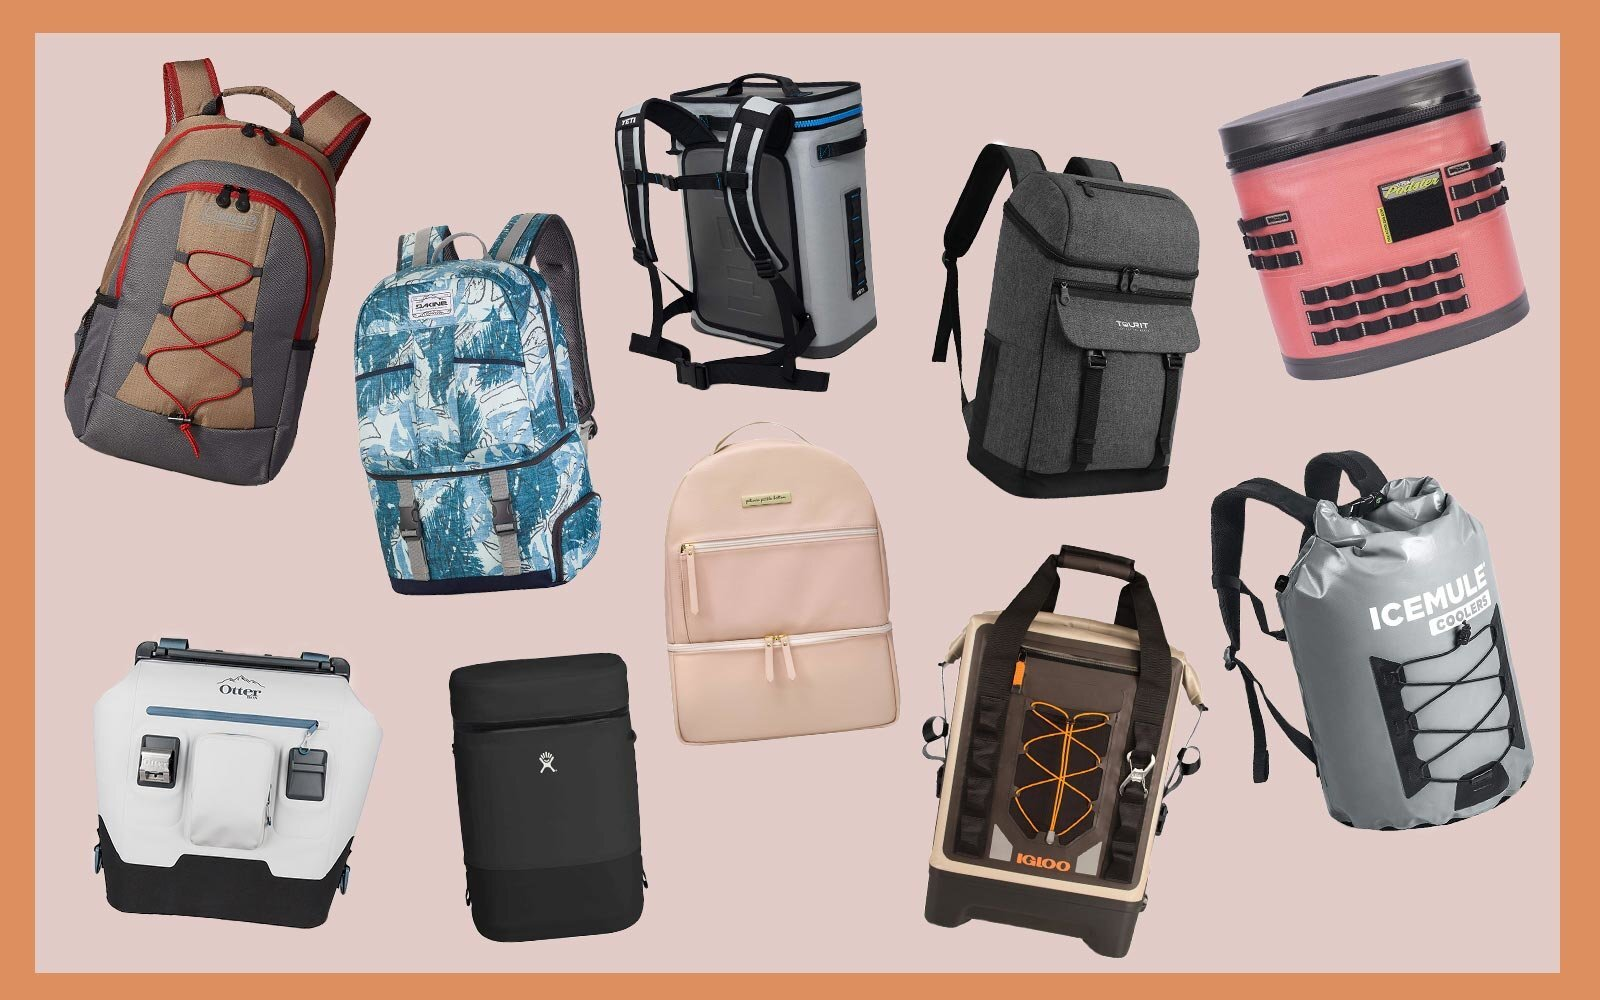 d7a45a97e42d The 11 Best Backpack Coolers You Can Buy in 2019 | Travel + Leisure